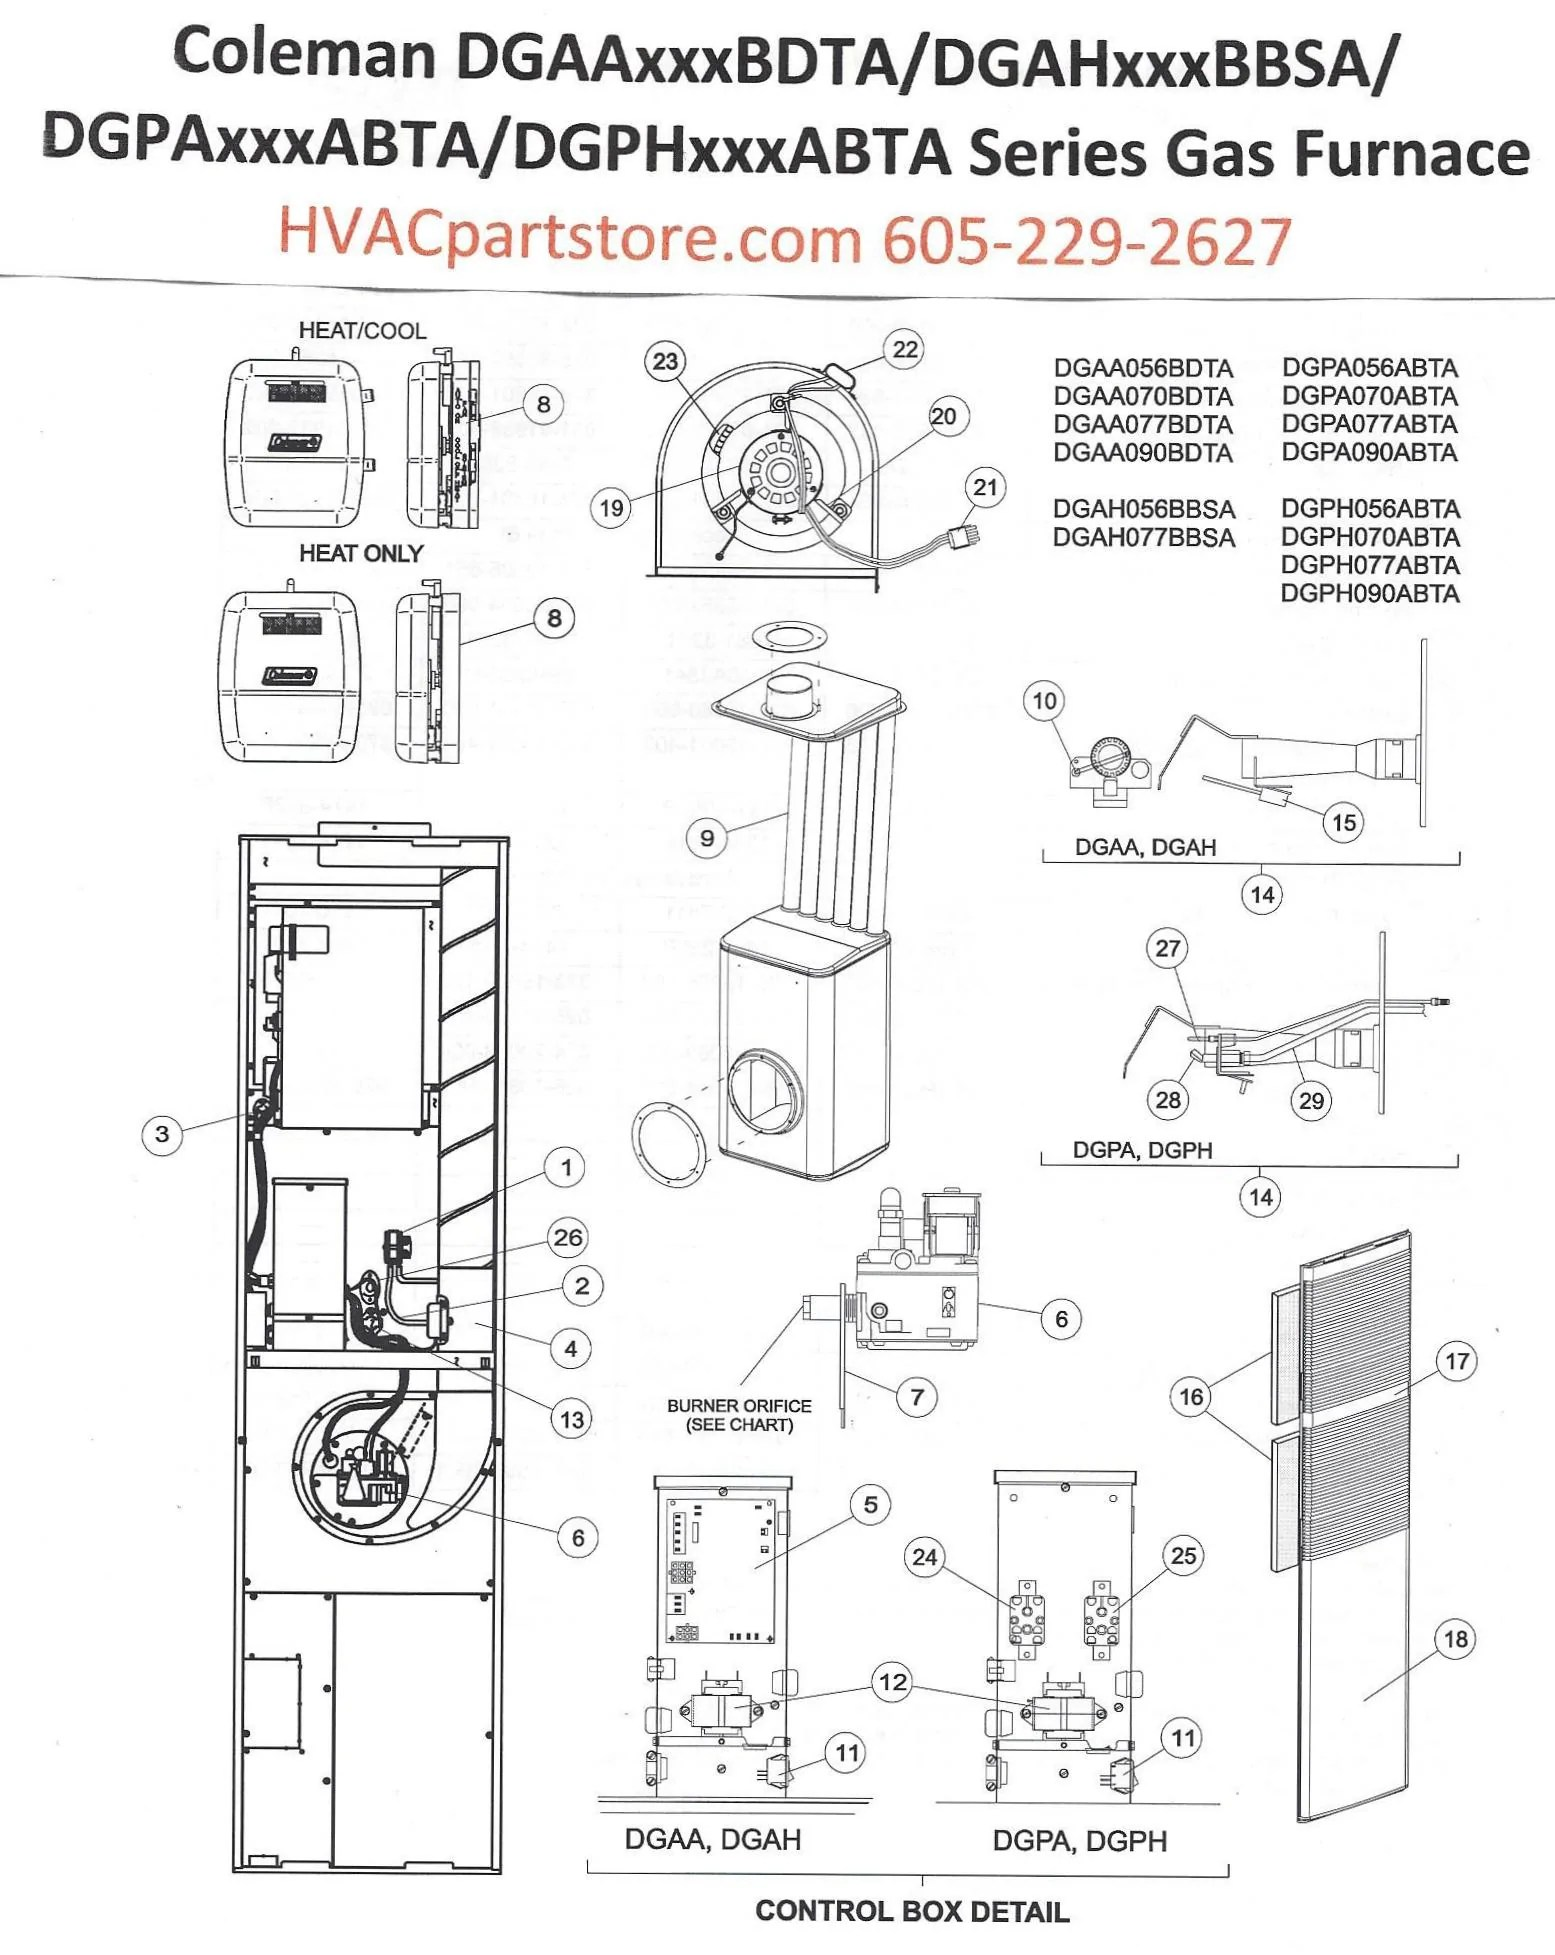 7 wire thermostat wiring diagram 2002 pontiac grand am ignition switch dgah077bbsa coleman gas furnace parts – hvacpartstore